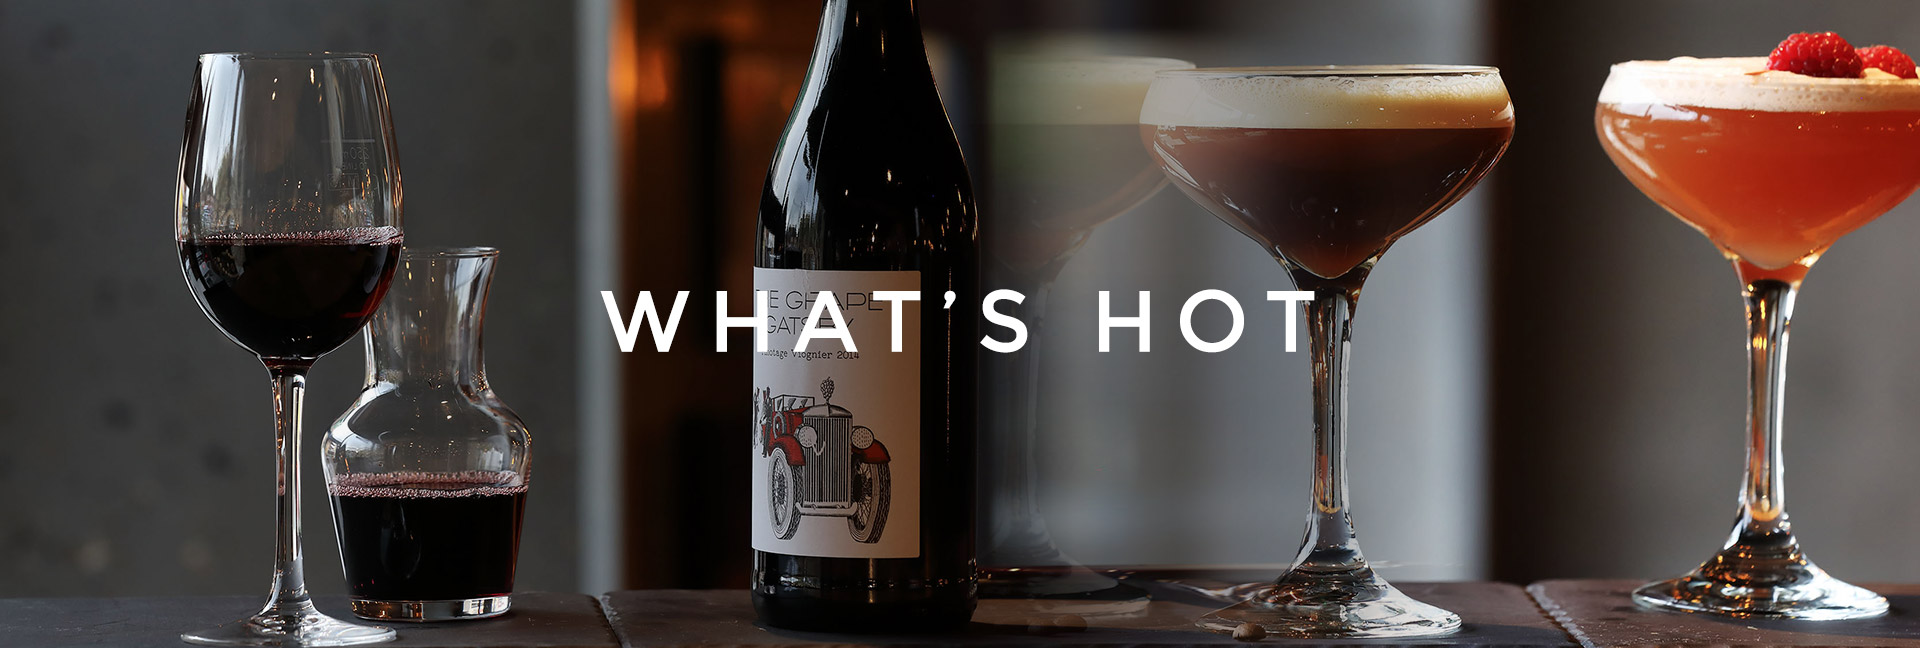 What's Hot at All Bar One Milton Keynes